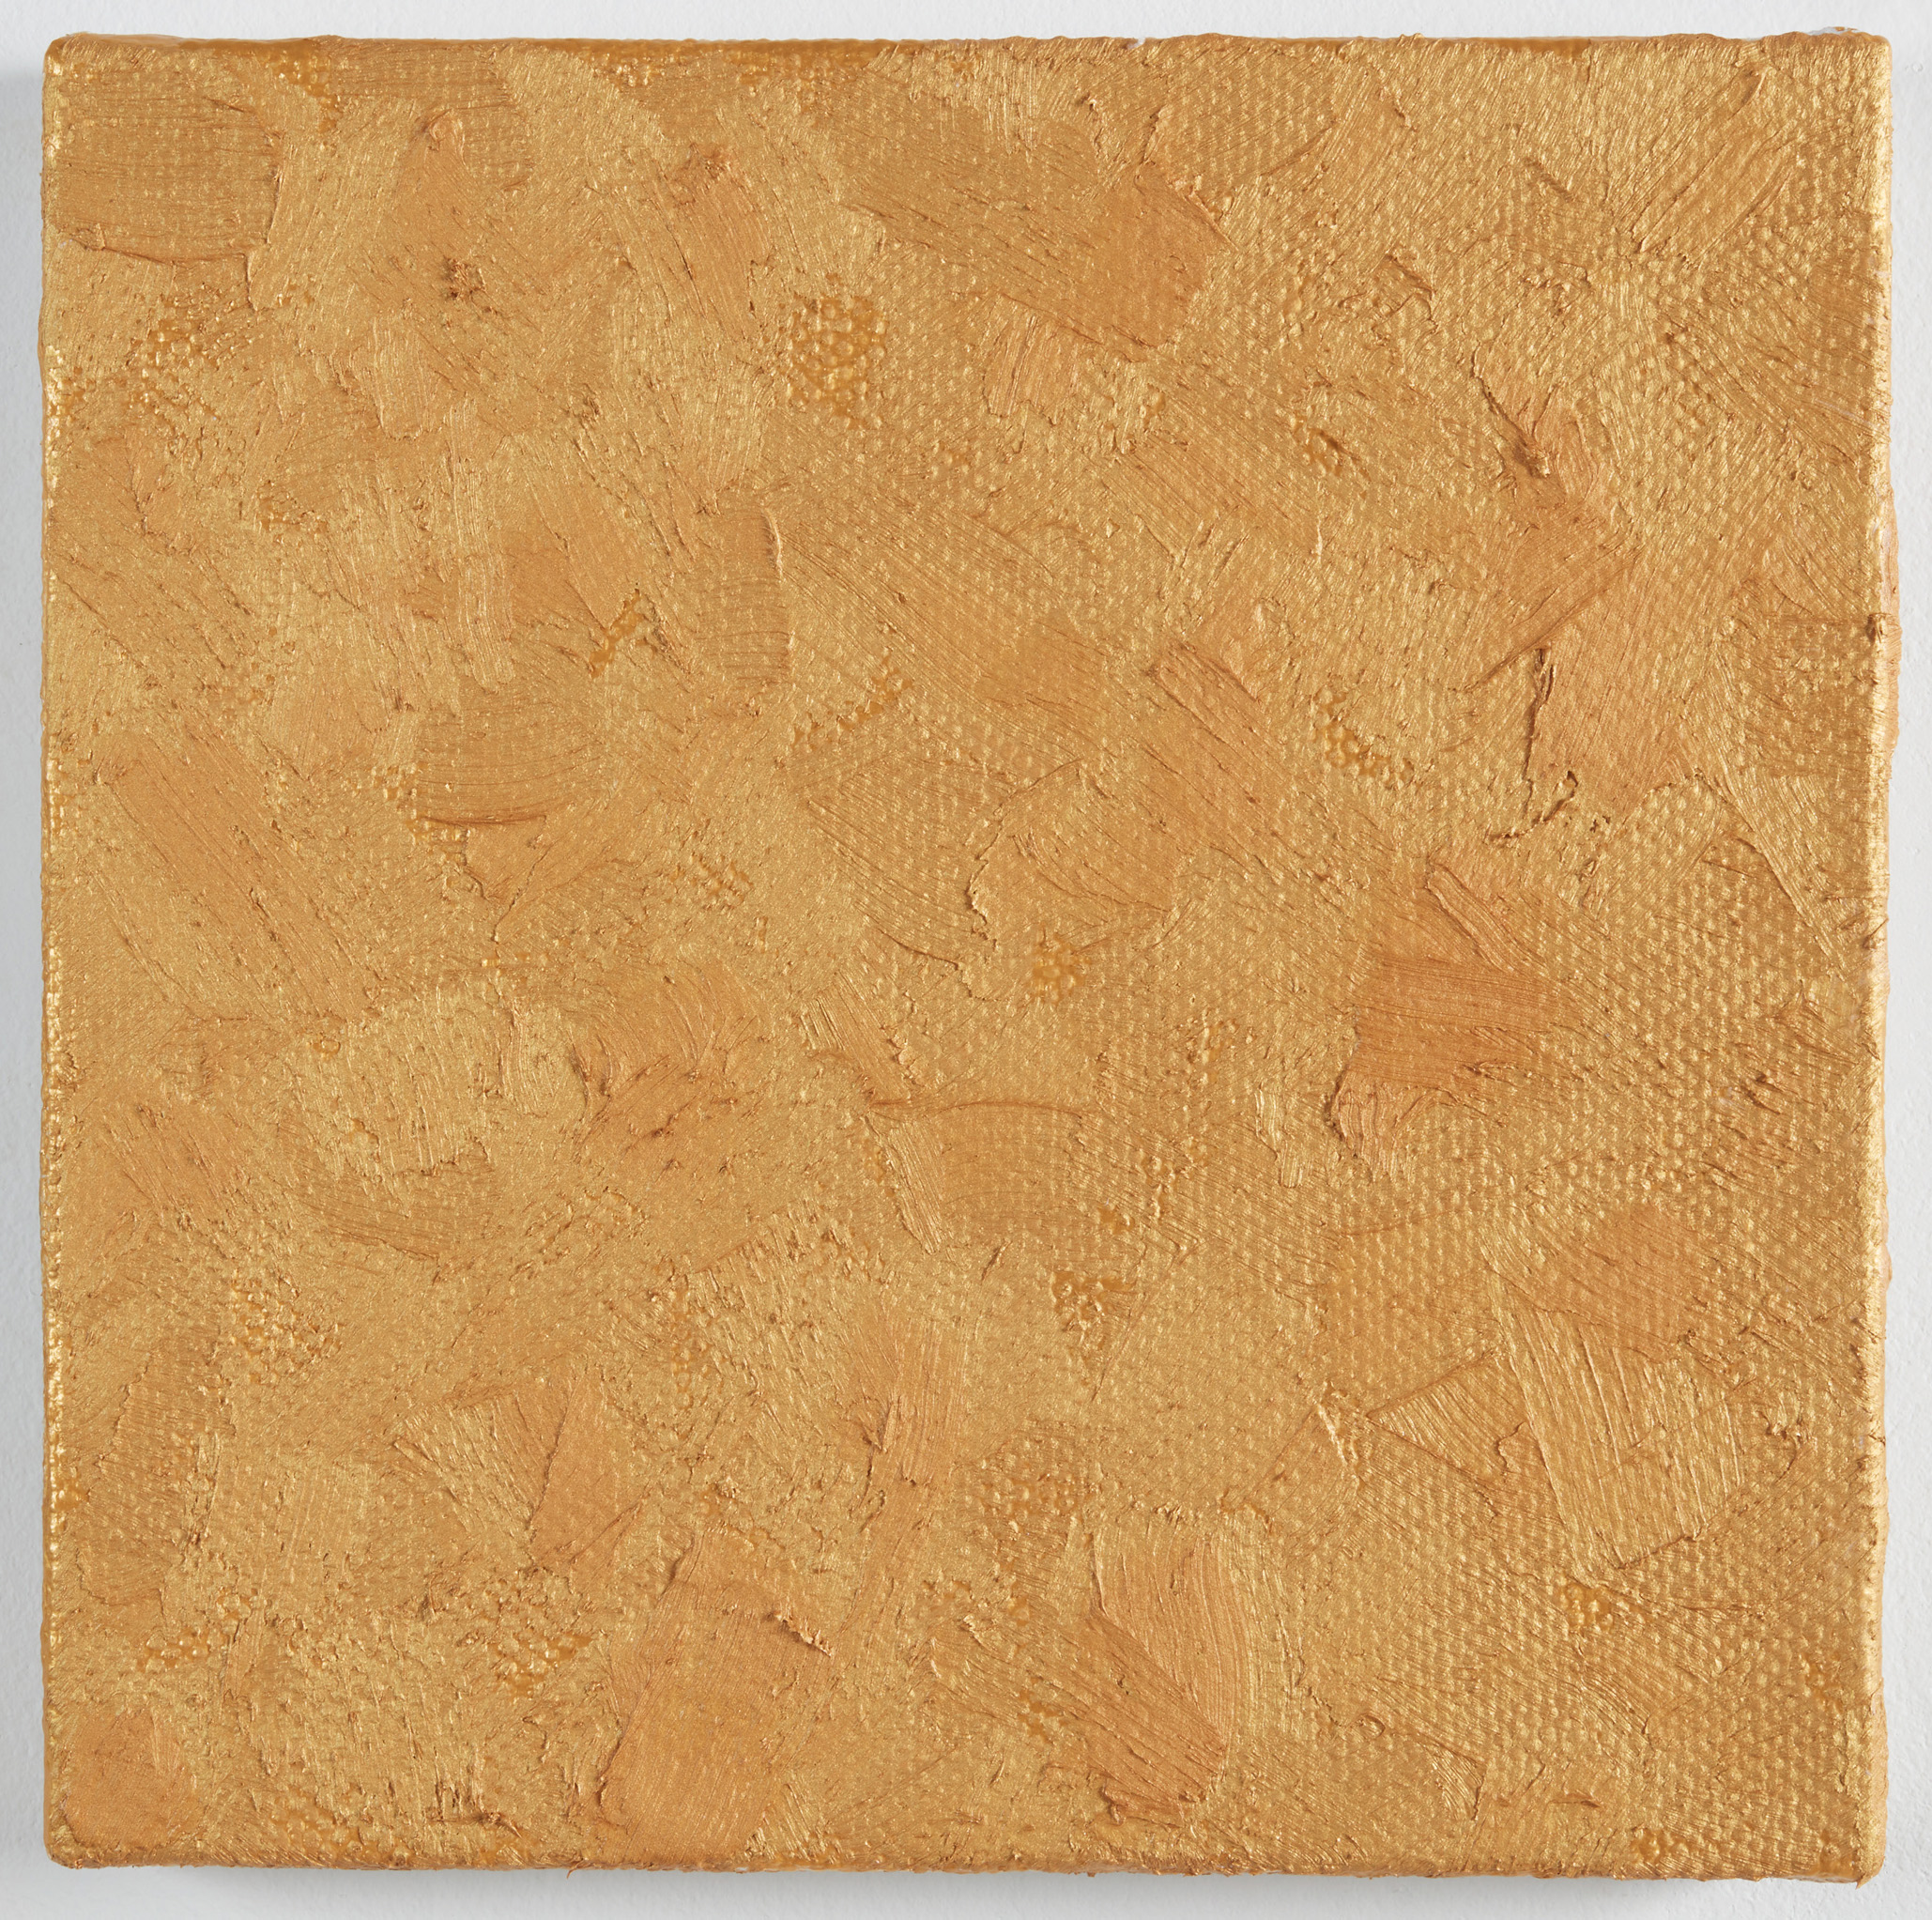 DAVID SERISIER  gold square painting no.1 , 2019 oil on acrylic on linen 30.5 x 30.5 cm